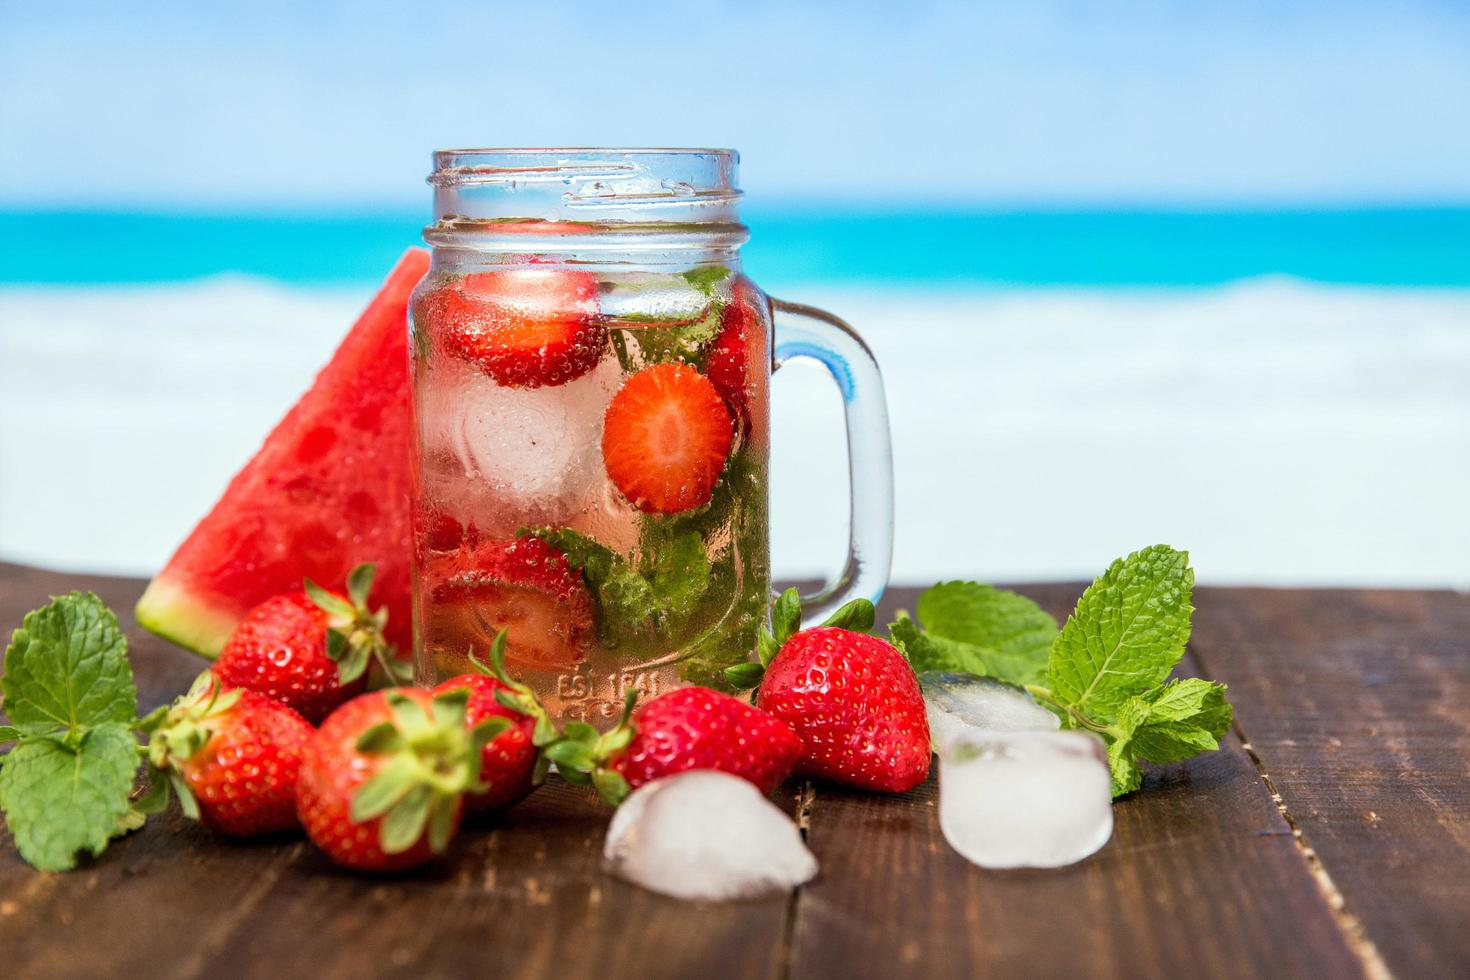 Strawberry drink against tropical background photo